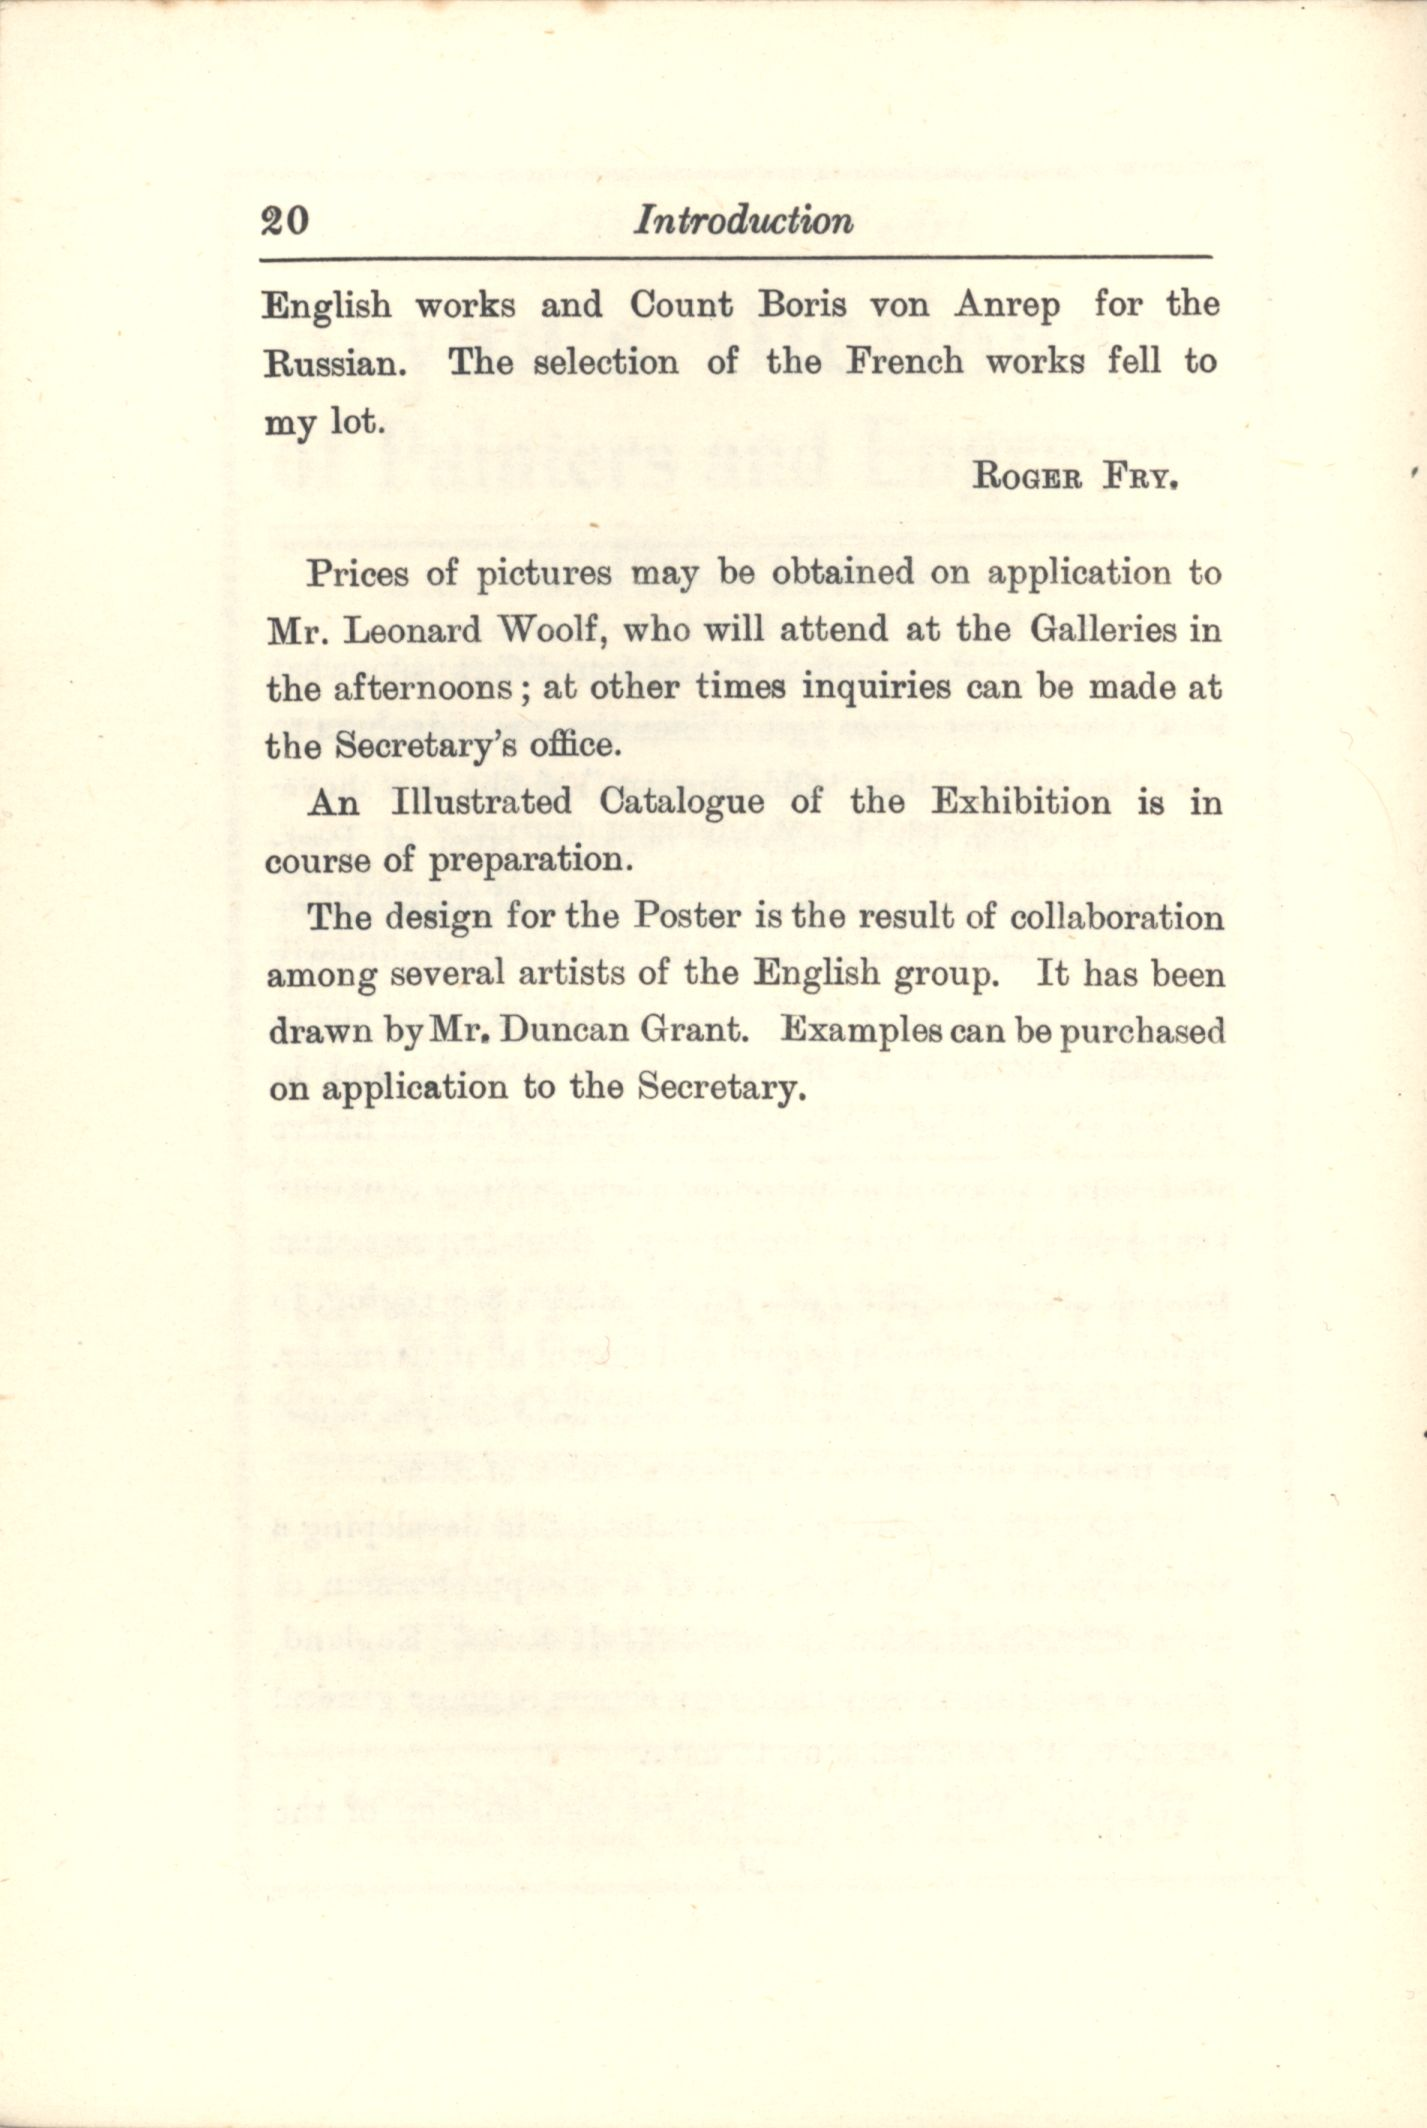 Second page of the Introduction to the 'Second Post-Impressionist Exhibition' catalogue. [JMK/PP/70/2]